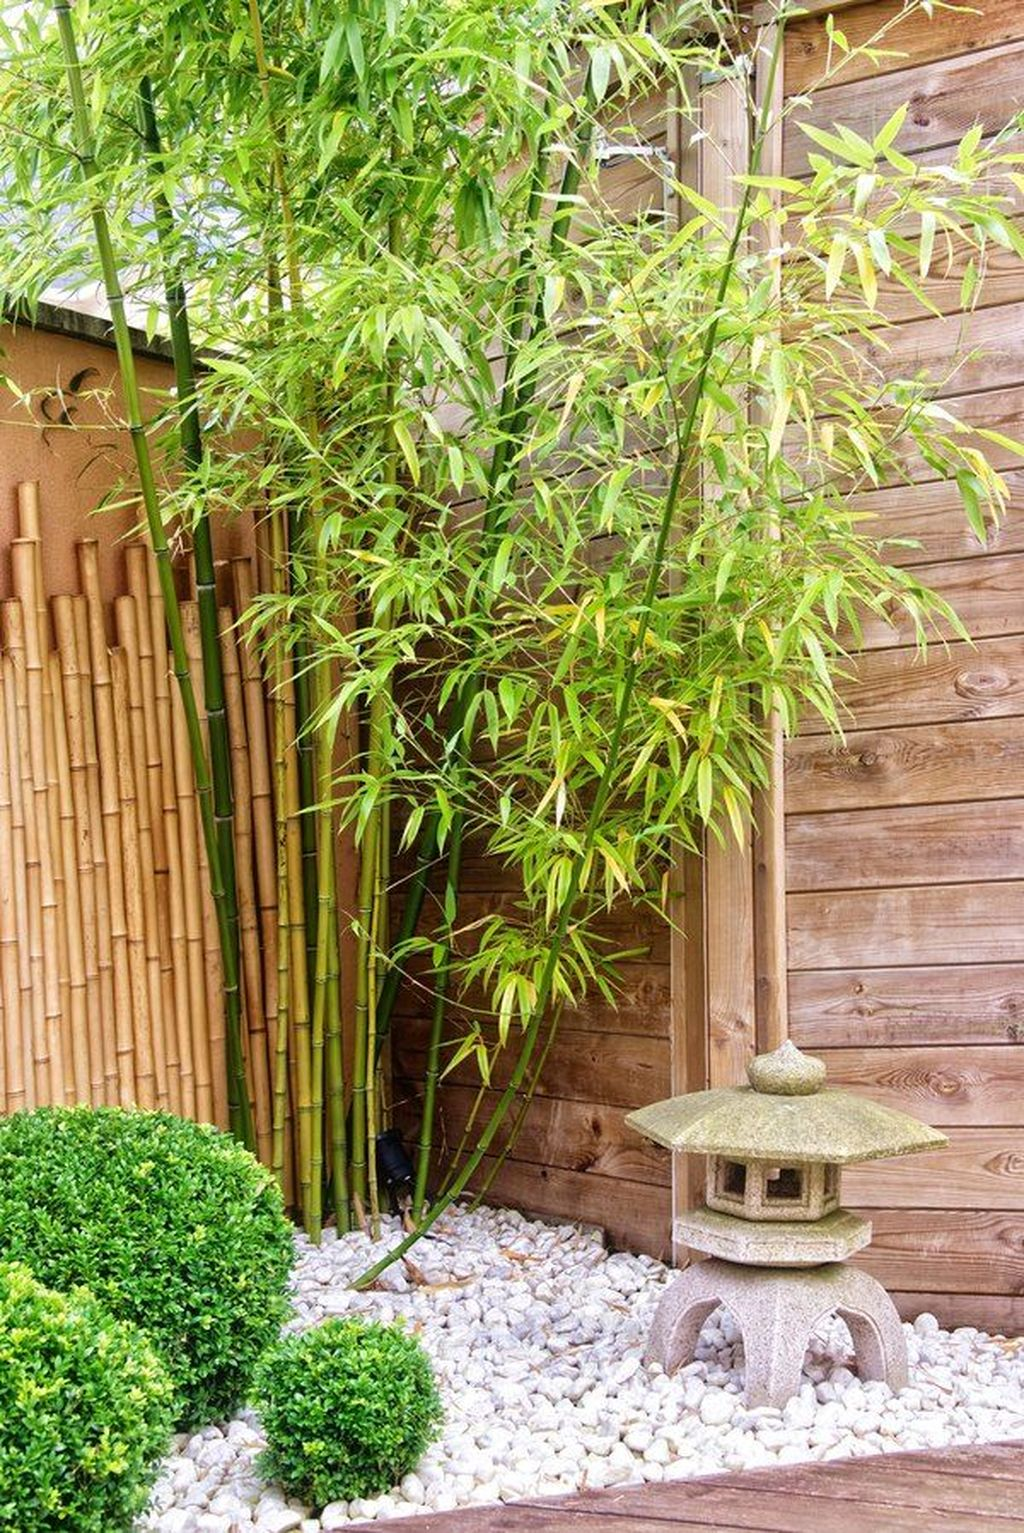 Awesome Japanese Garden Design Ideas That You Definitely Like 26